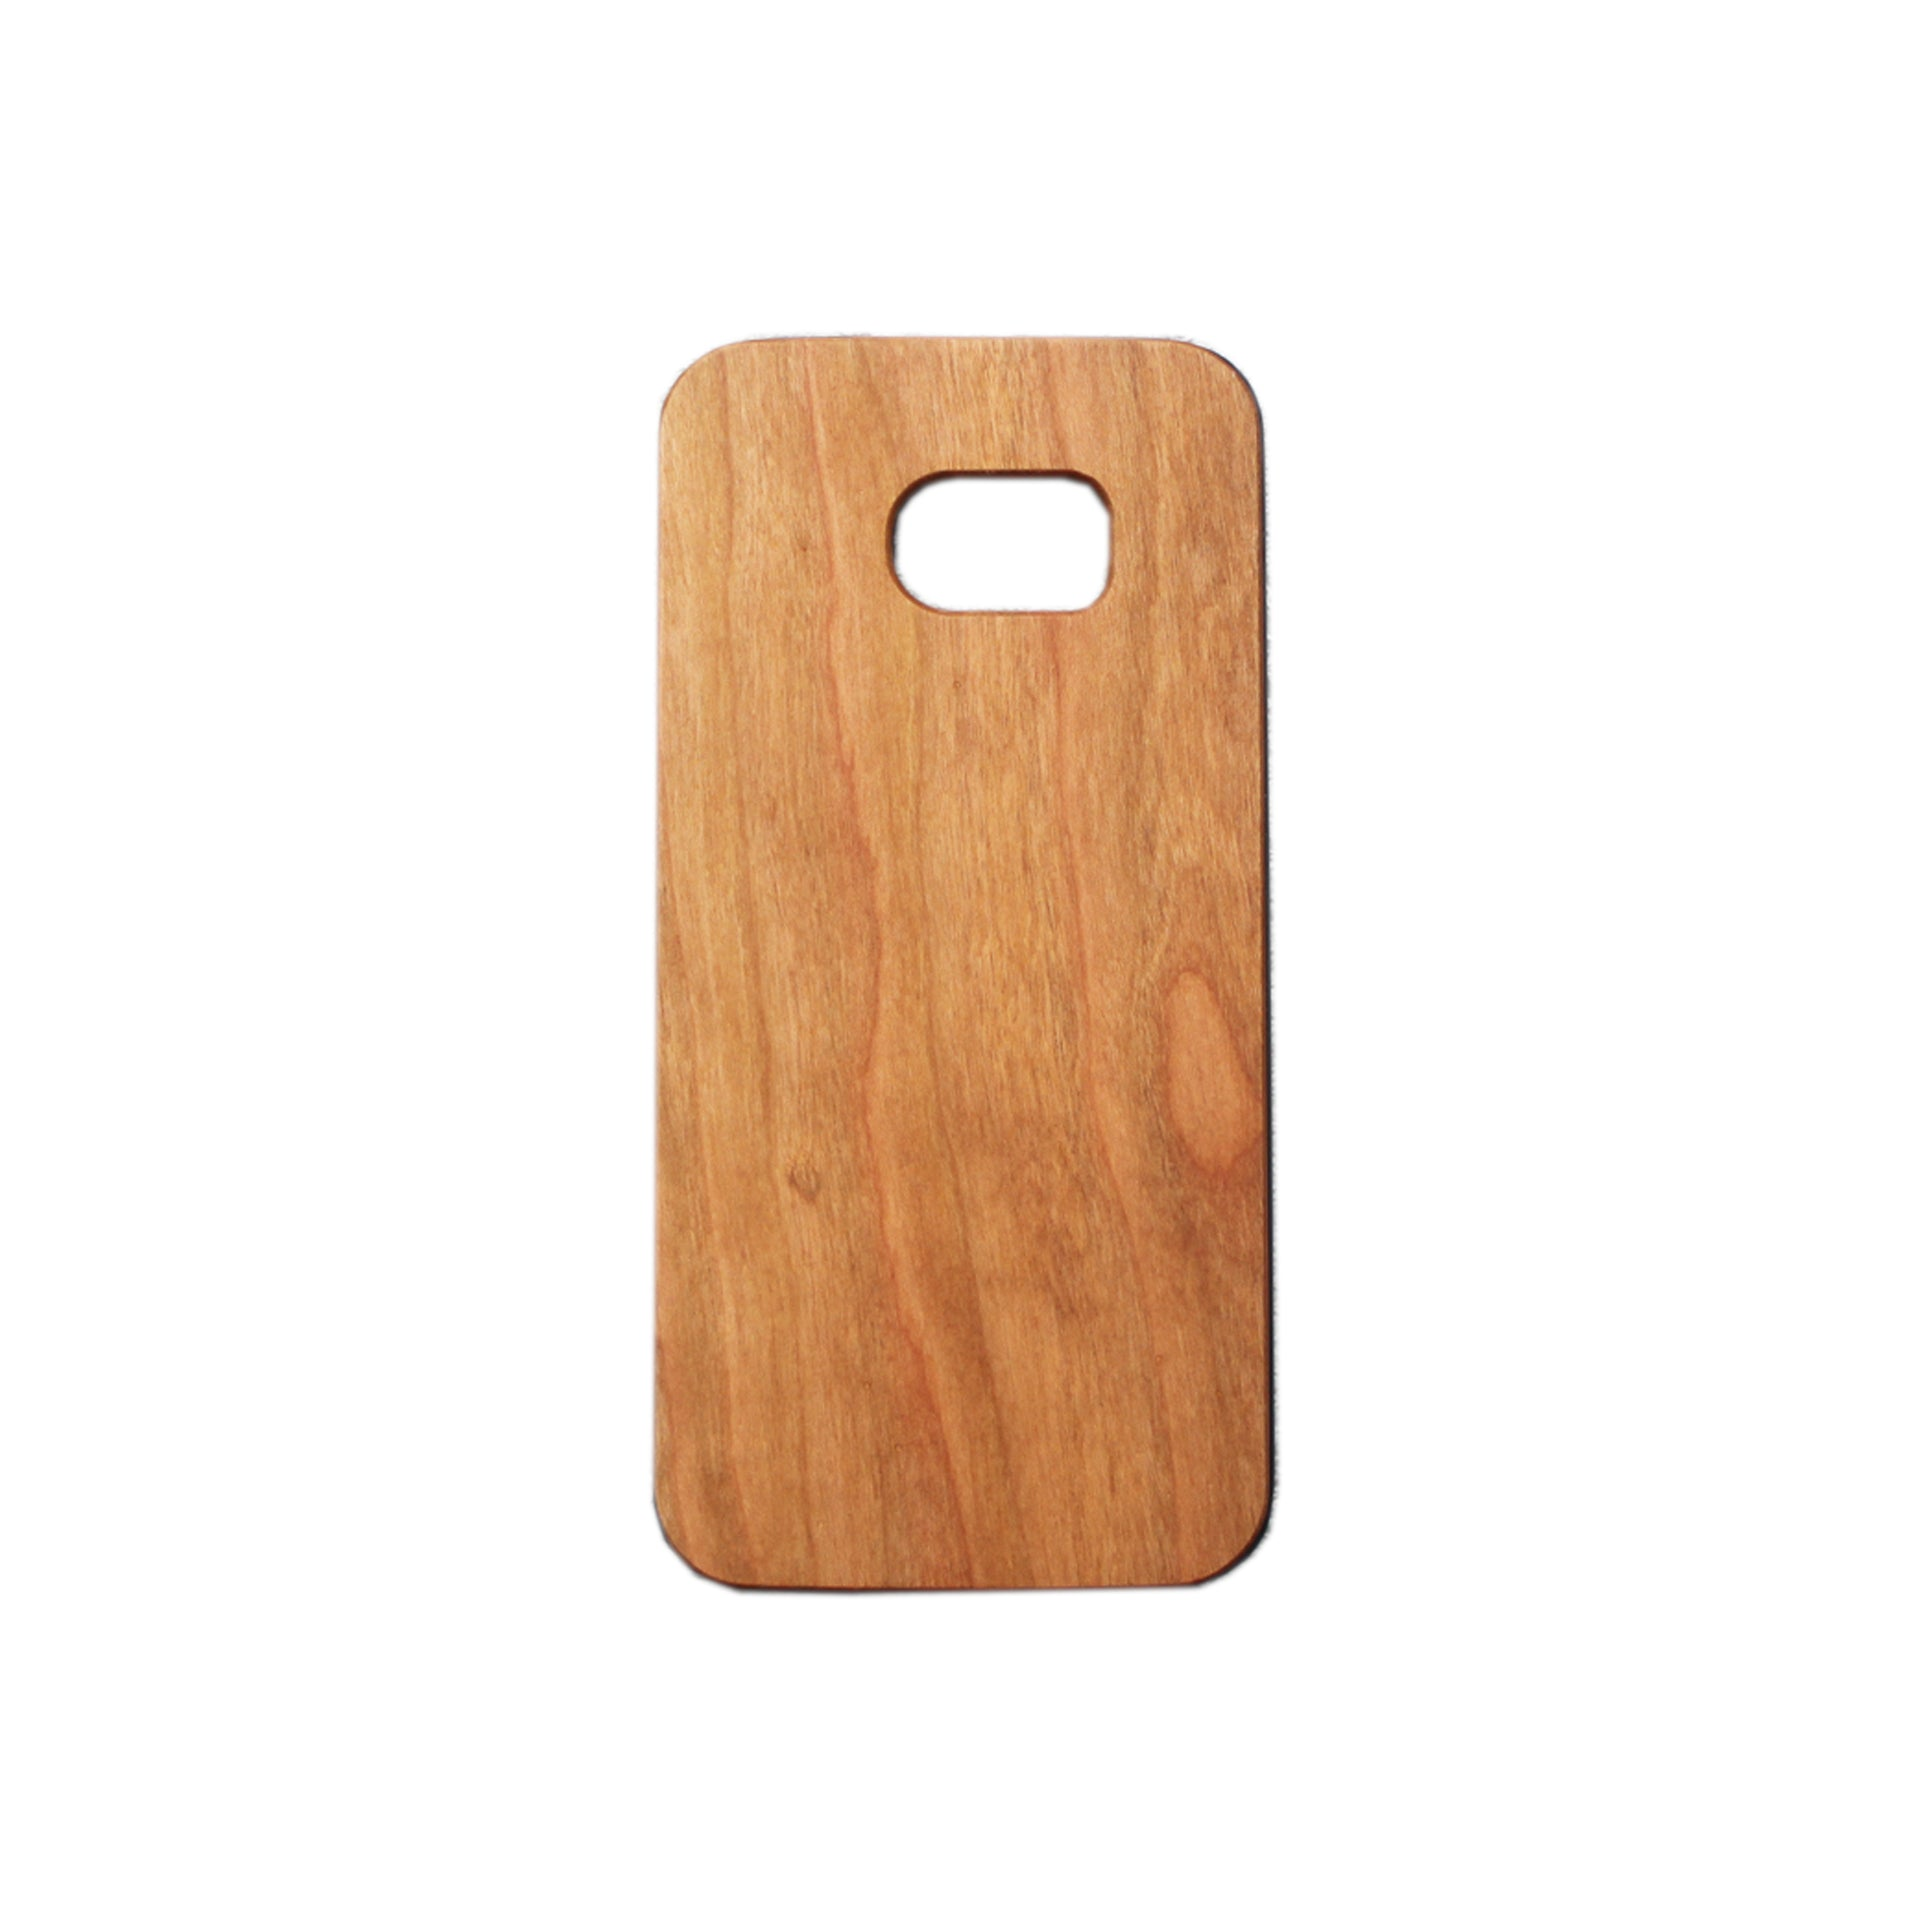 Samsung S7 Edge Personalised Wooden Phone Case